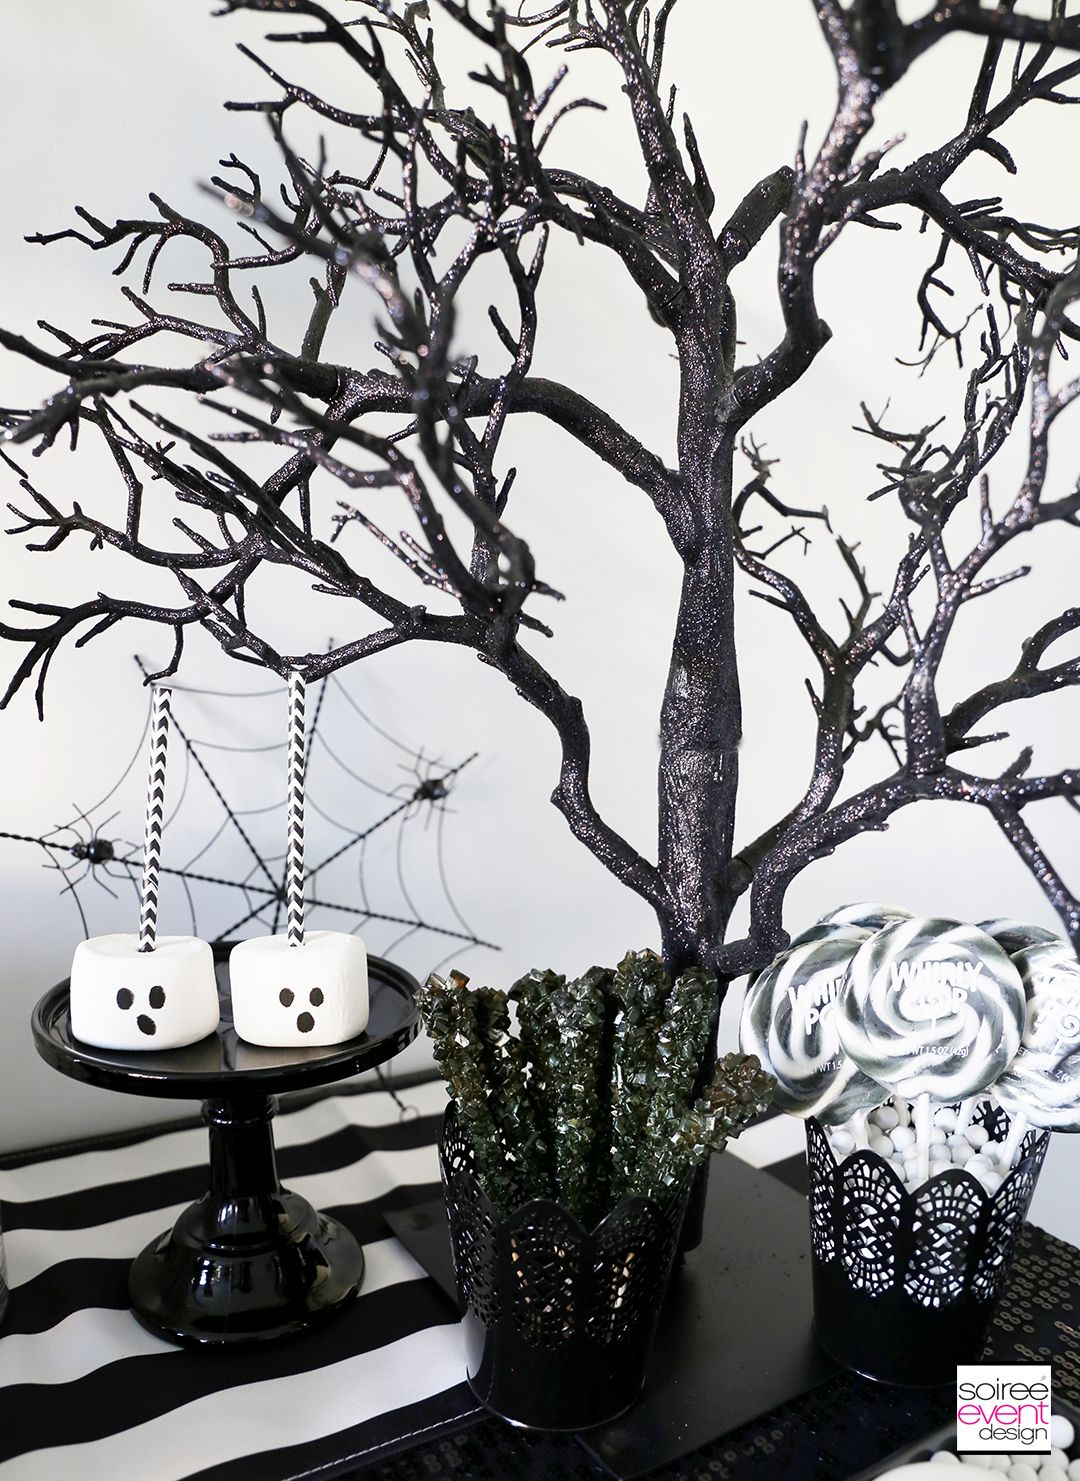 Boo Black And White Halloween Party White Halloween Party Black Party Decorations Black And White Party Decorations